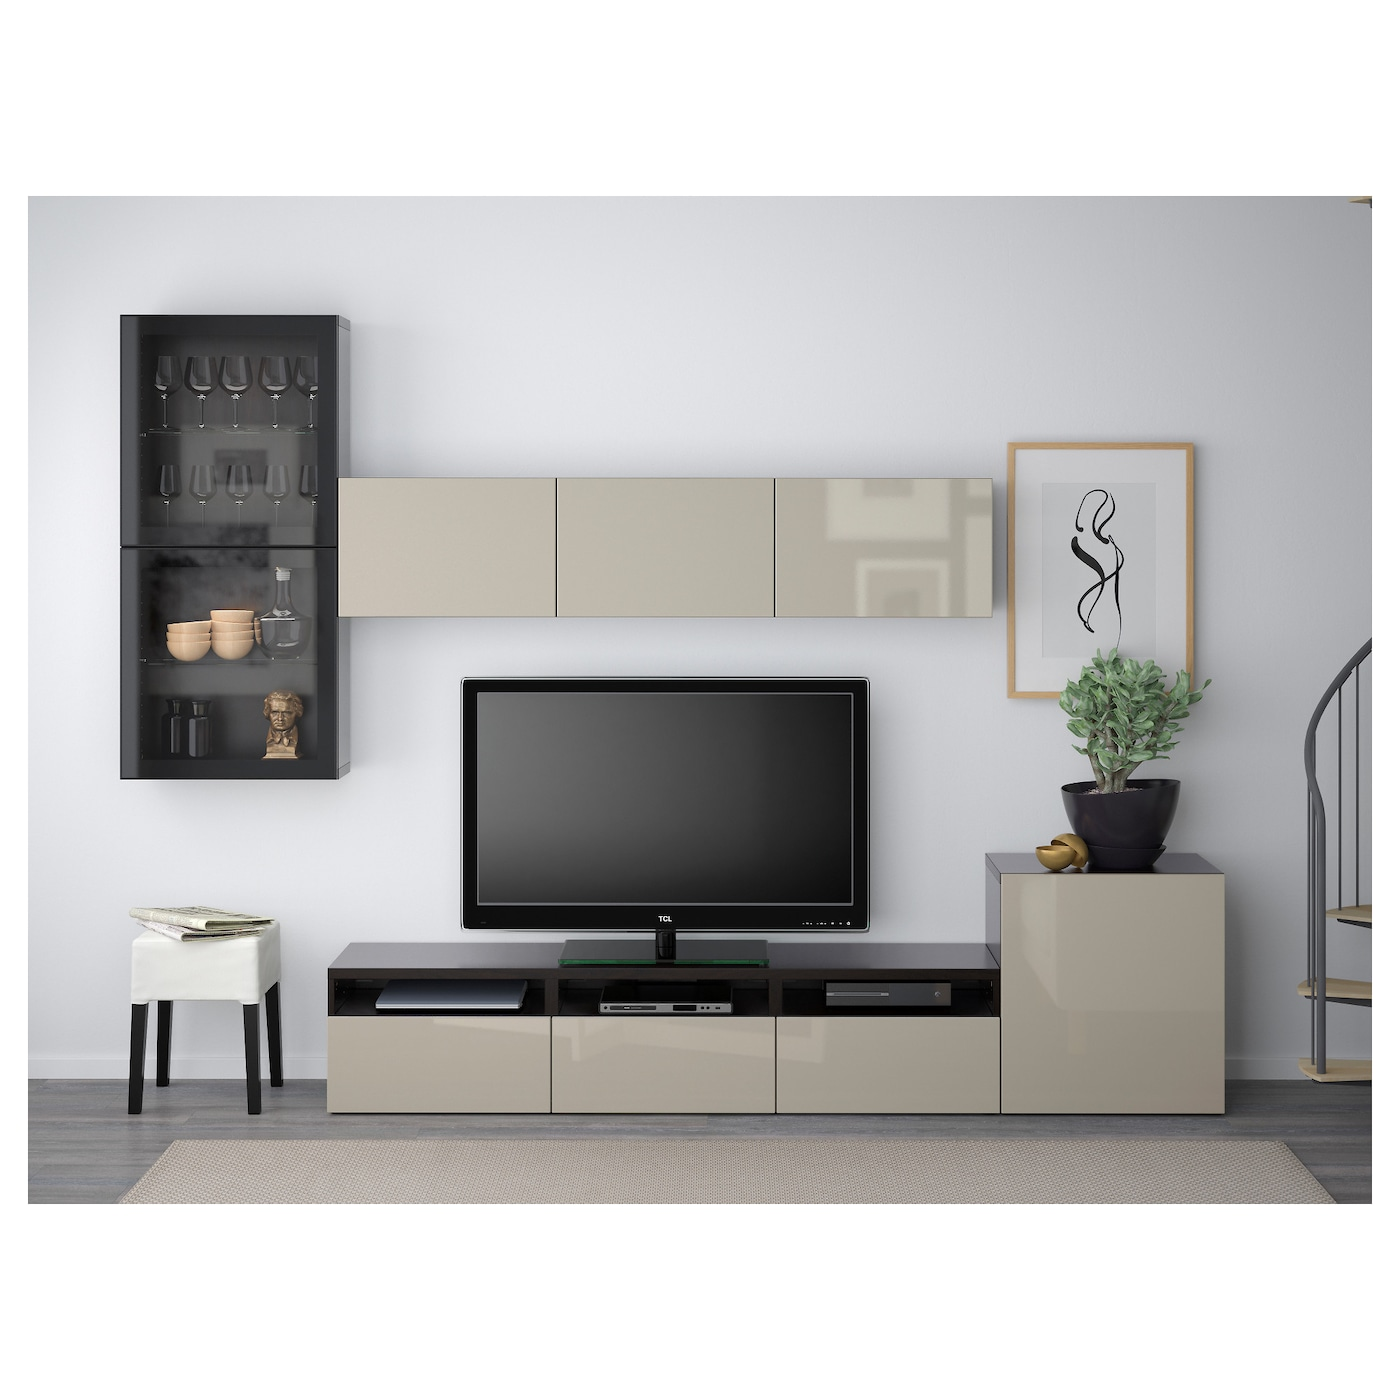 Besta Wohnwand Malerei : BestÅ tv storage combination glass doors black brown